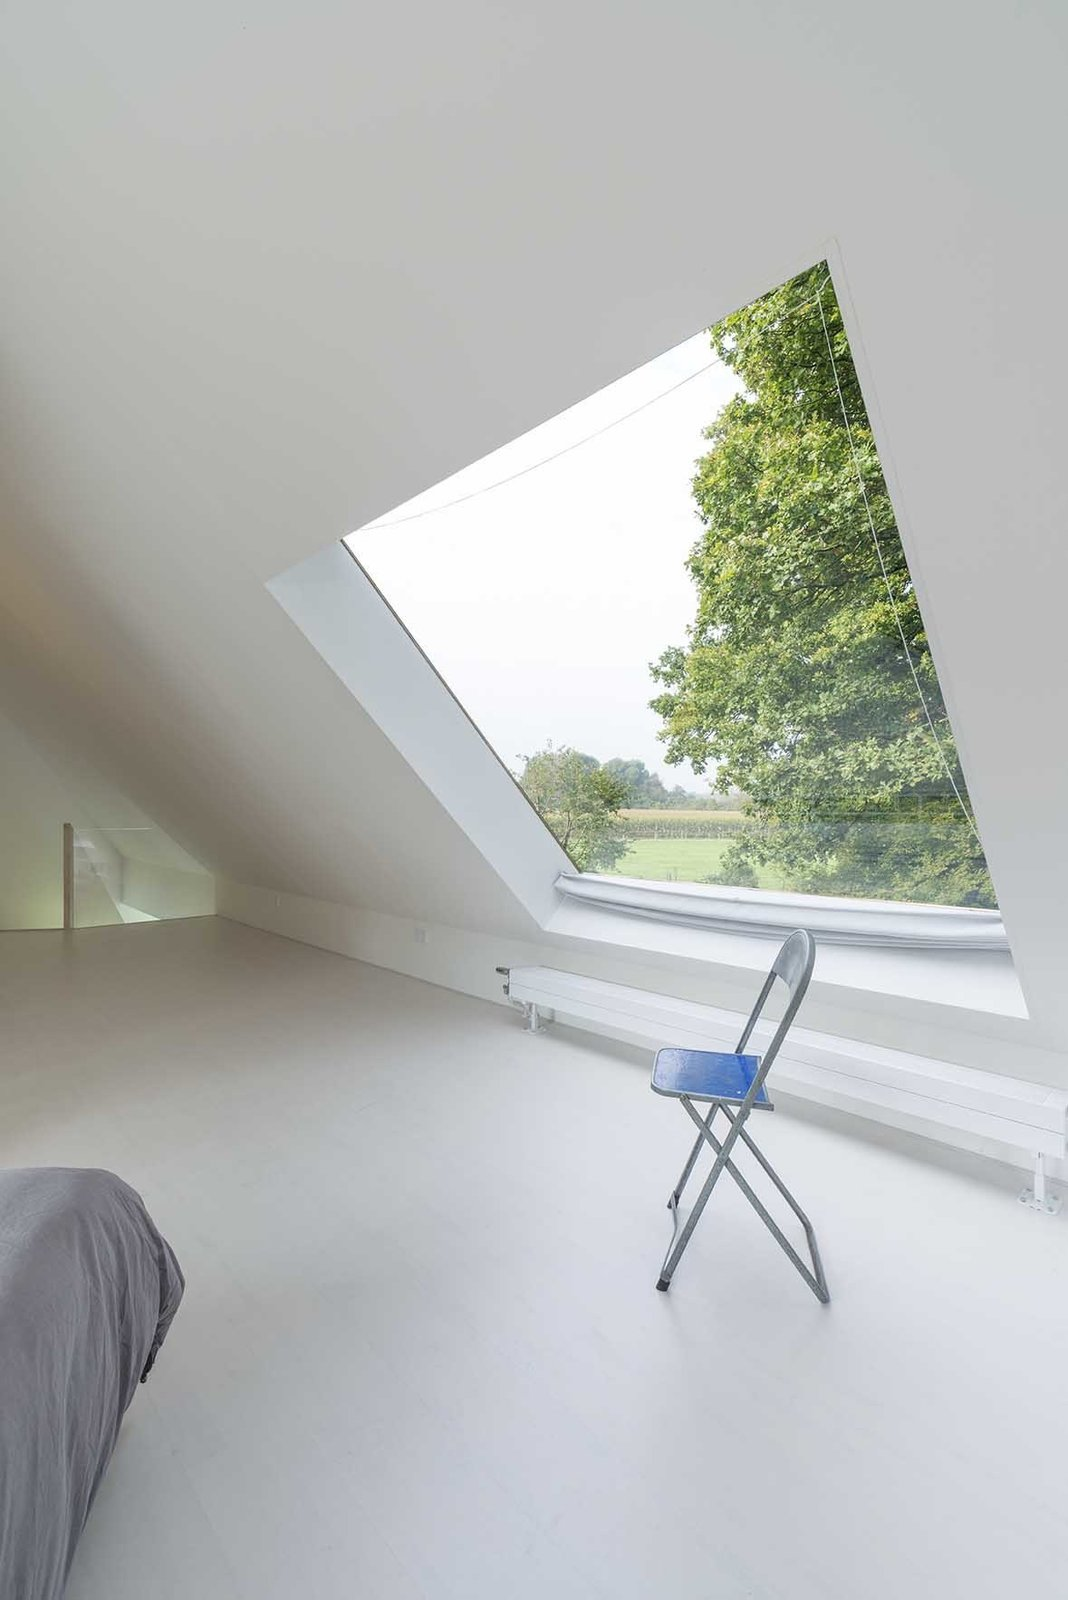 In the upstairs bedroom, a square skylight opens to a patch of sky.  Triangular House by Laura C. Mallonee